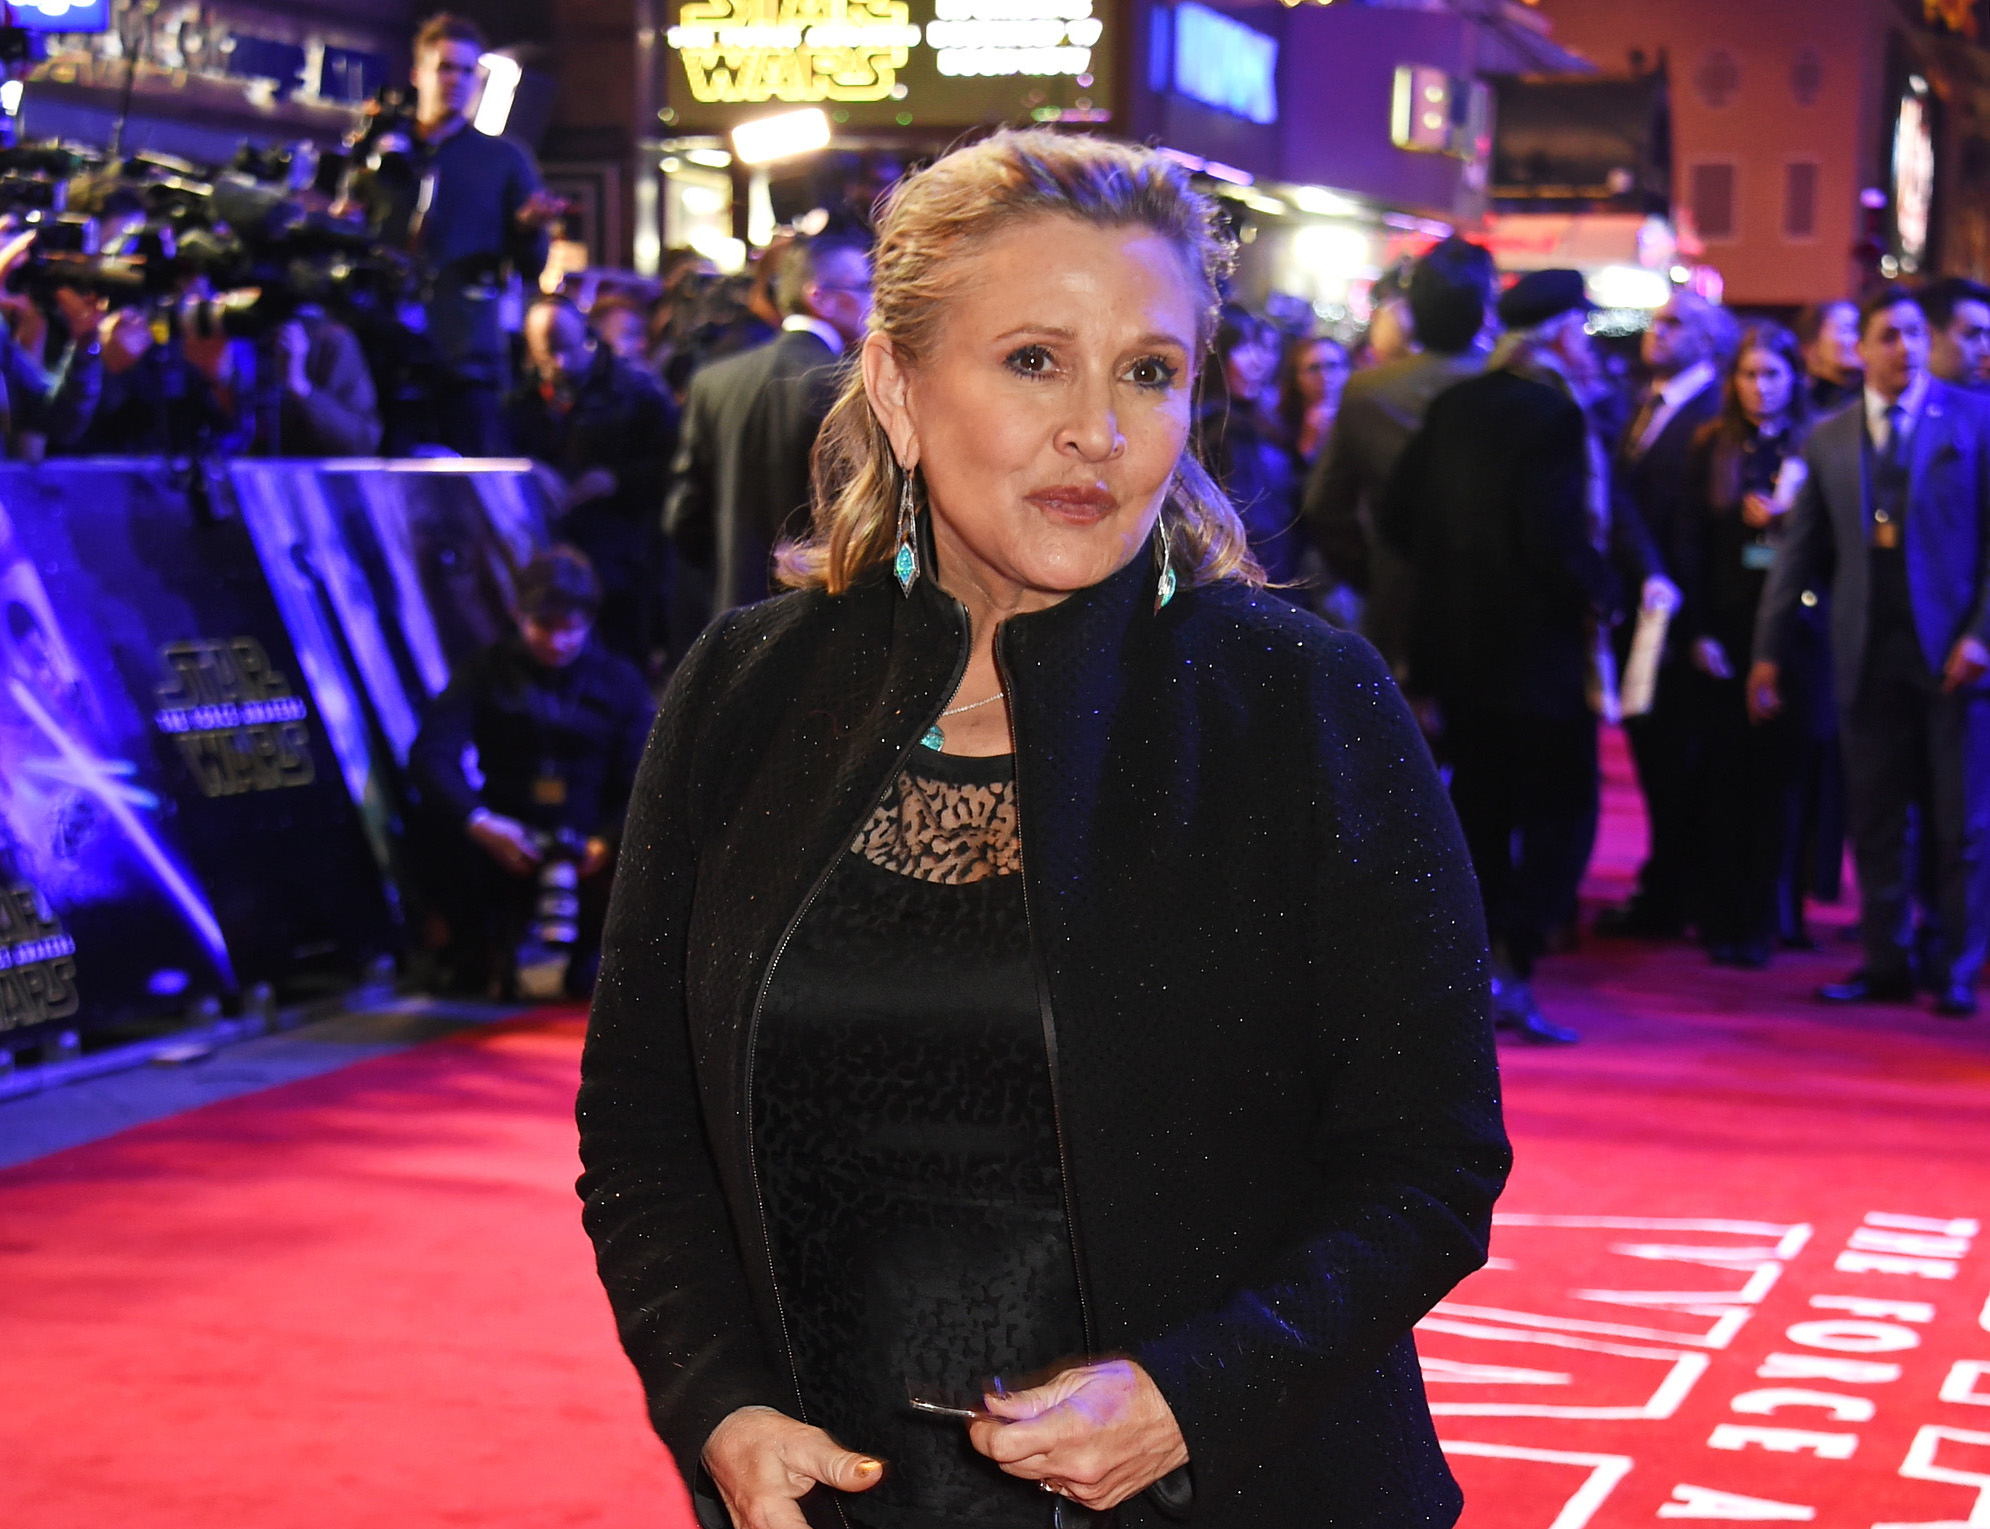 Disney and Lucasfilm have released statements about Carrie Fisher's death, and we're crying all over again